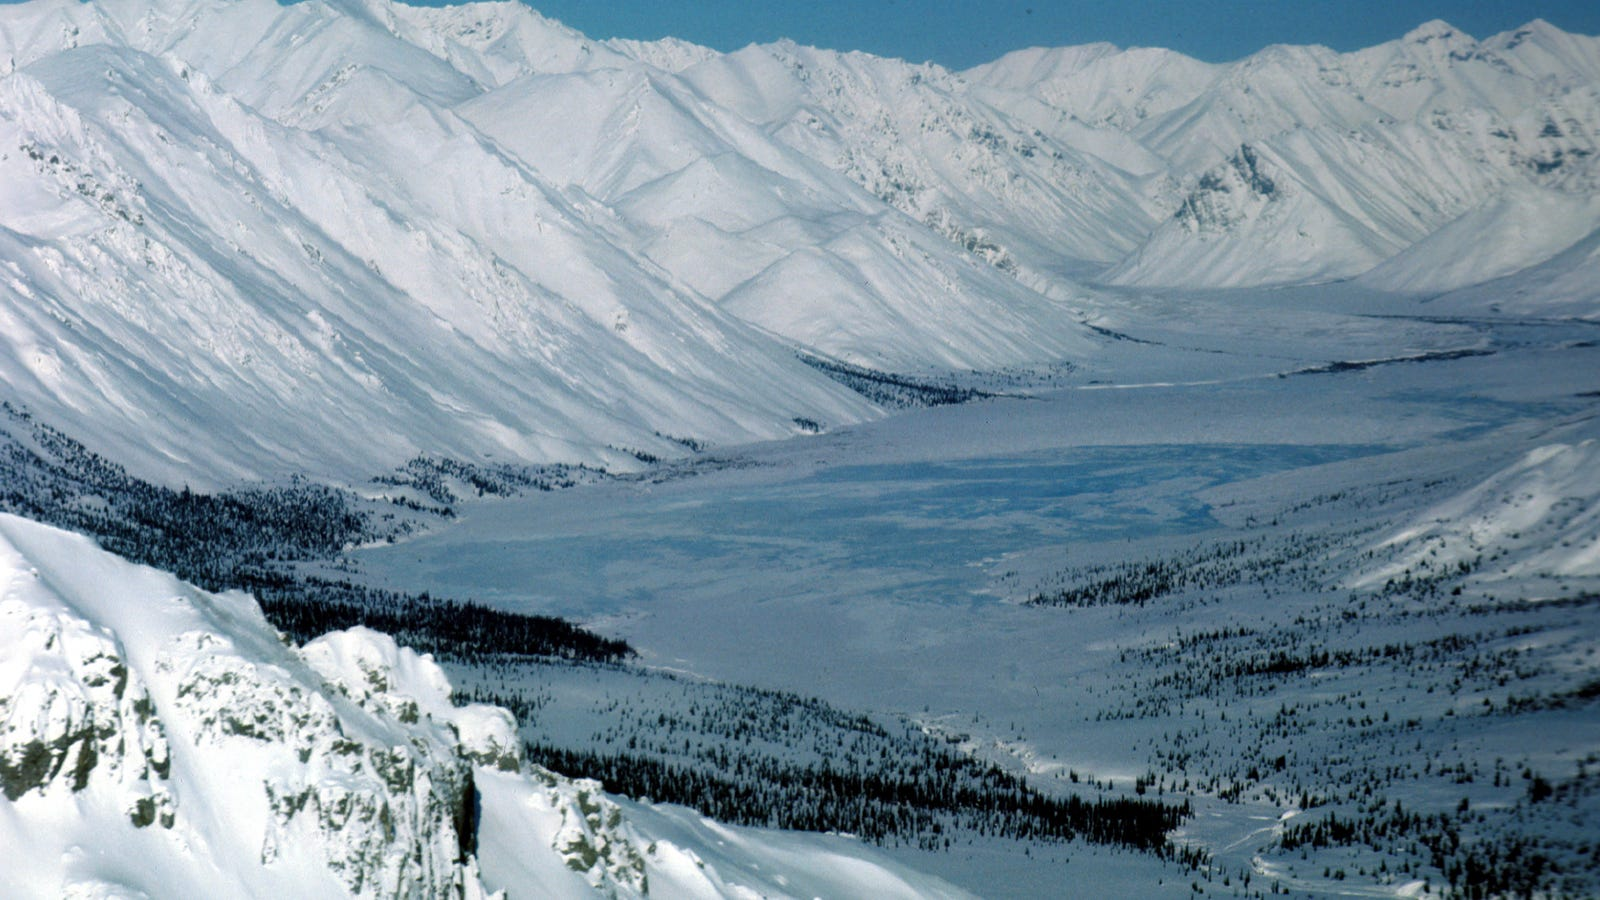 Investors Worth $2.5 Trillion Don't Want Drilling in the Arctic National Wildlife Refuge